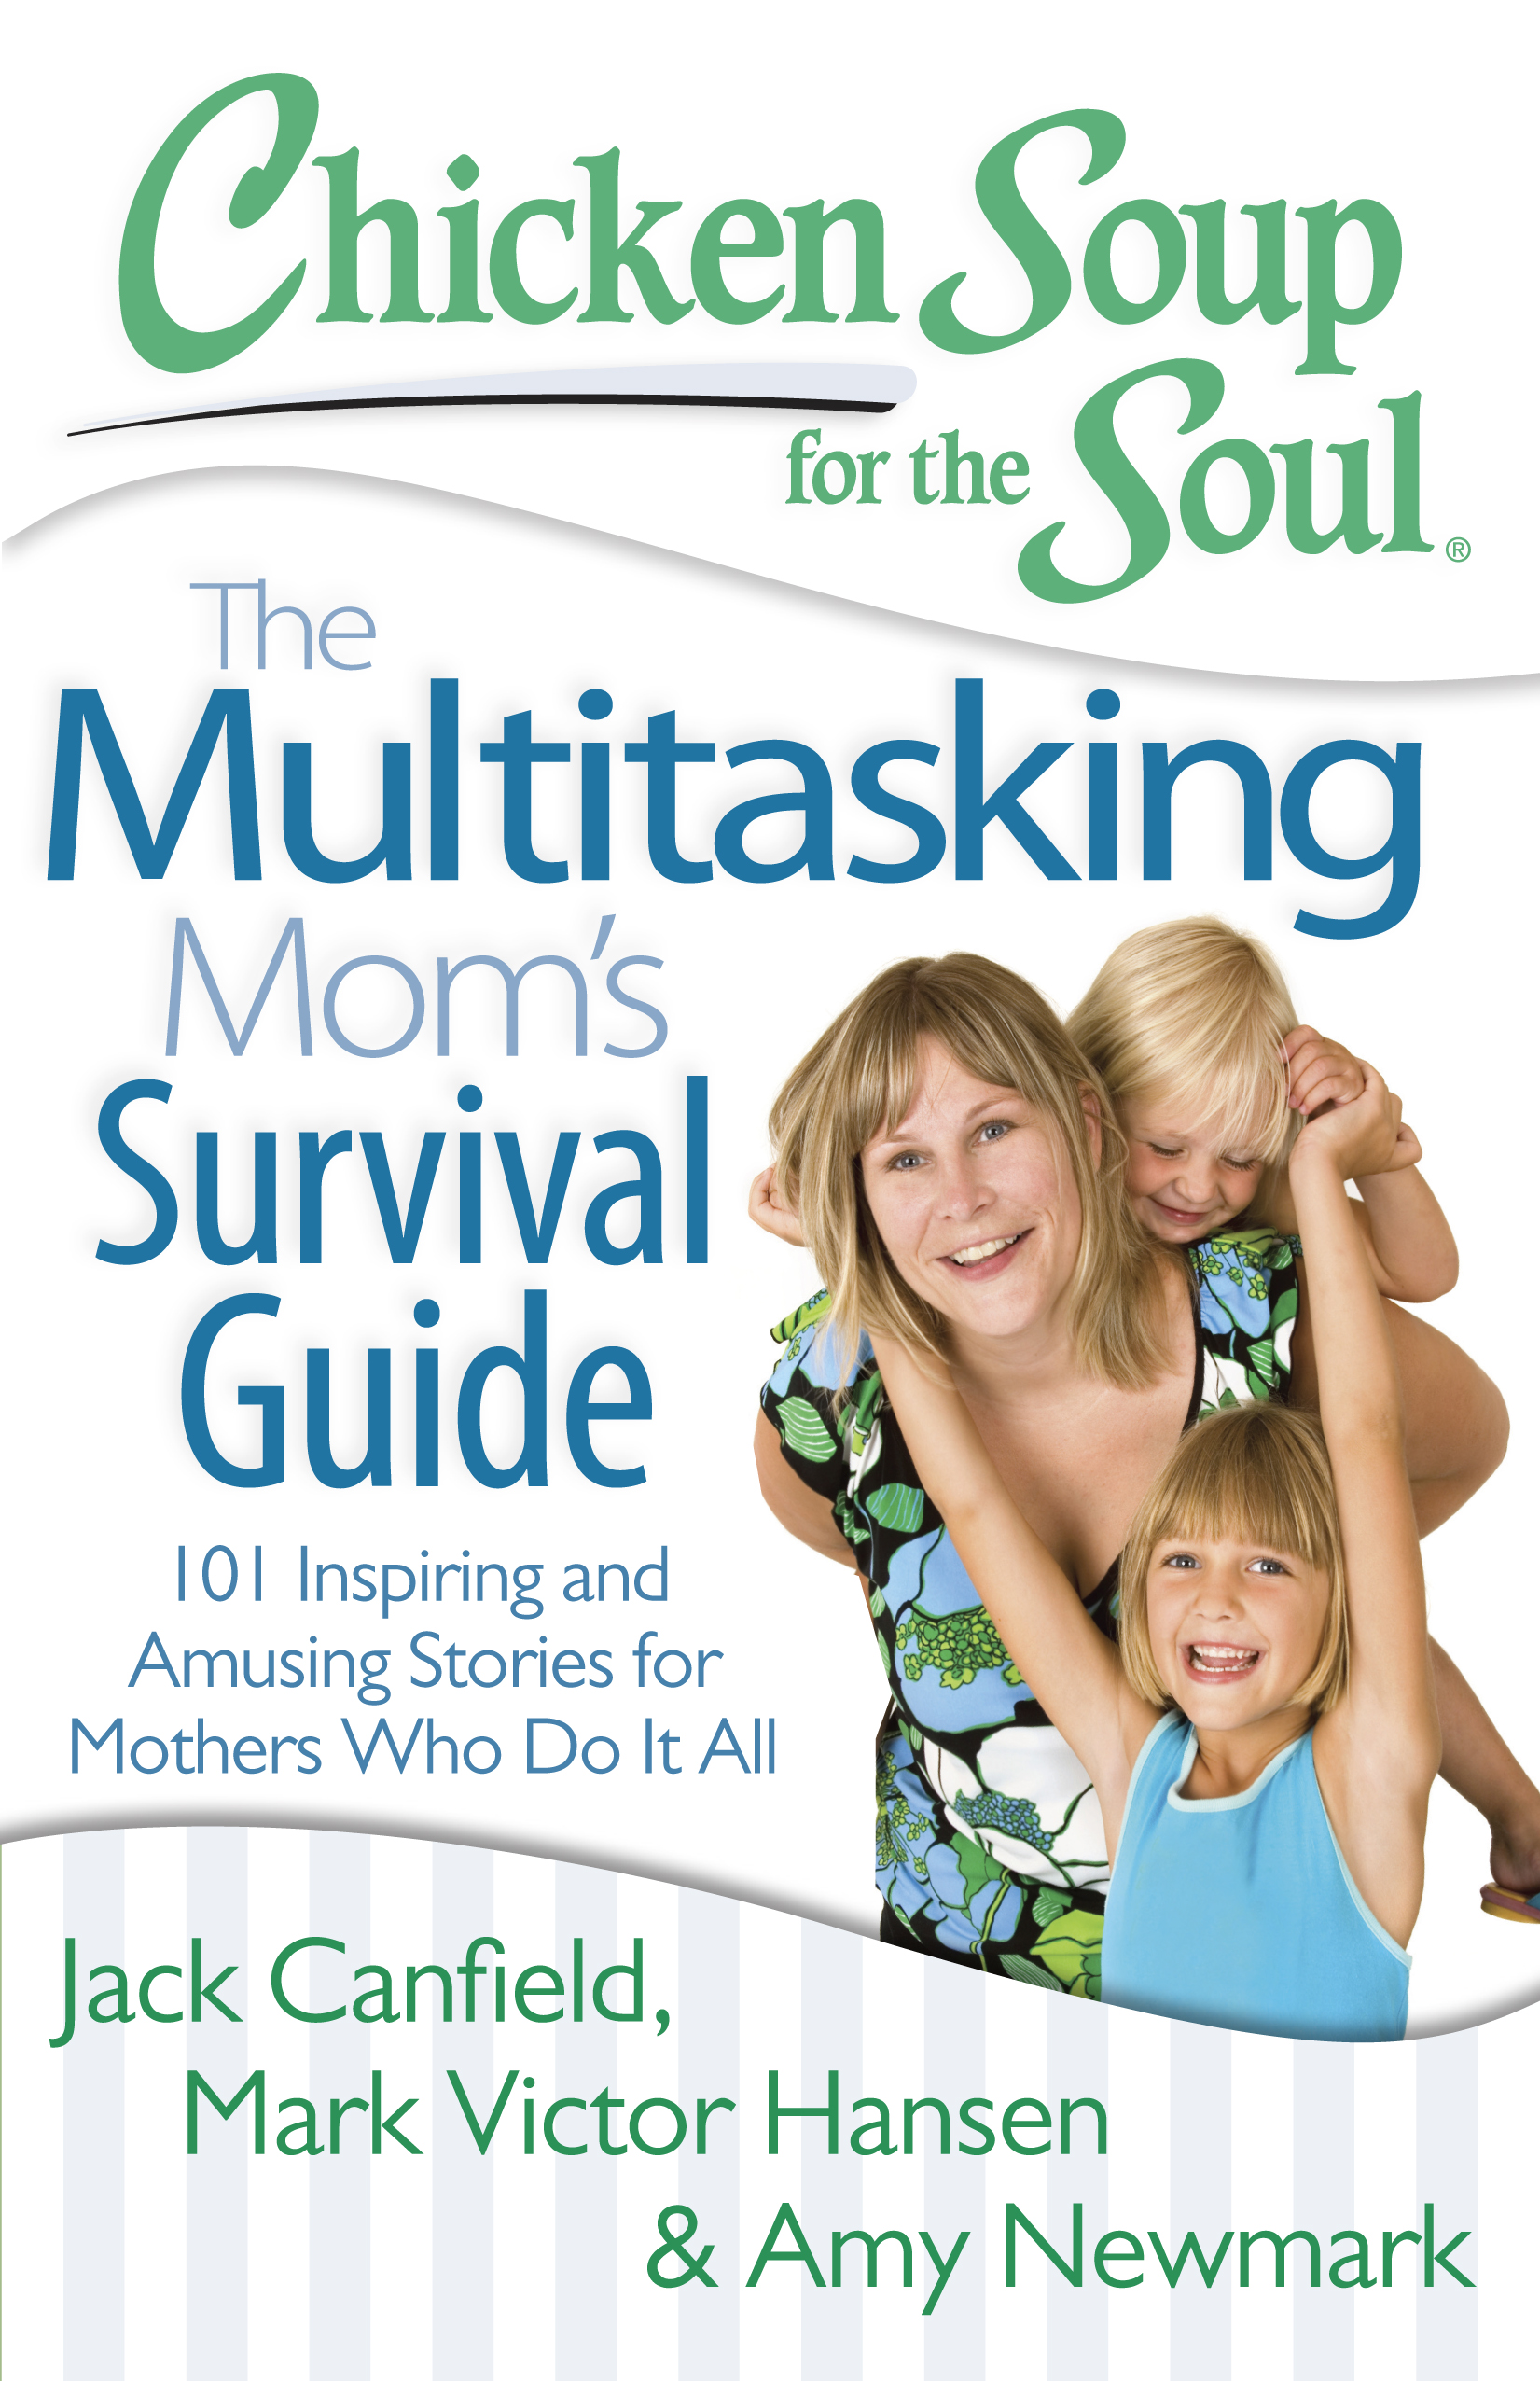 Chicken soup for the soul the multitasking mom s 9781611599336 hr